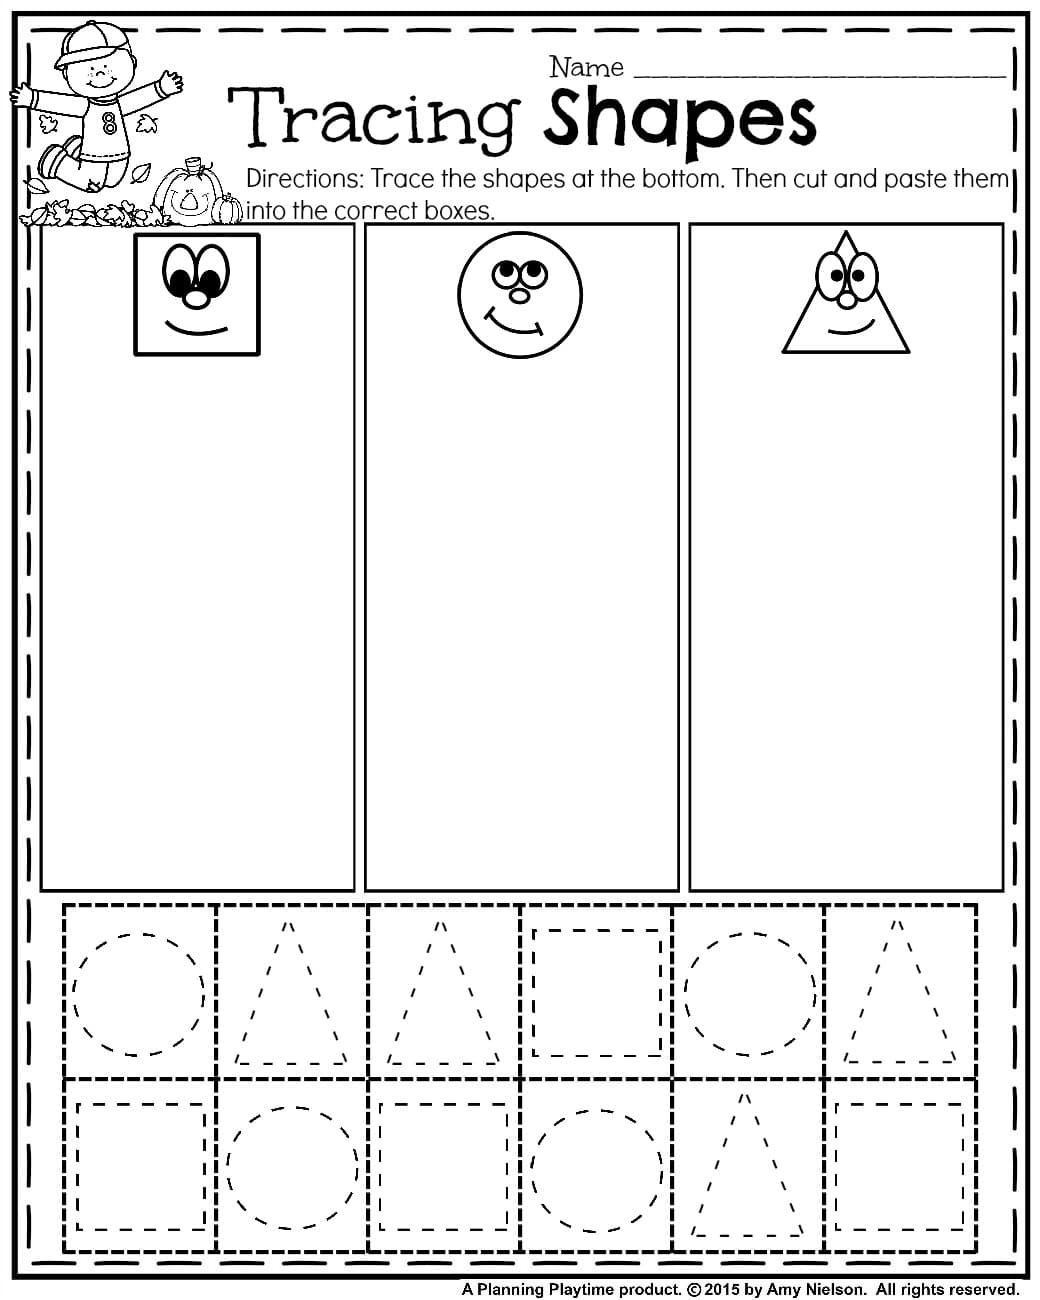 Printable Cut and Paste Worksheets 7 Best Cut and Paste Worksheets Images On Best Worksheets